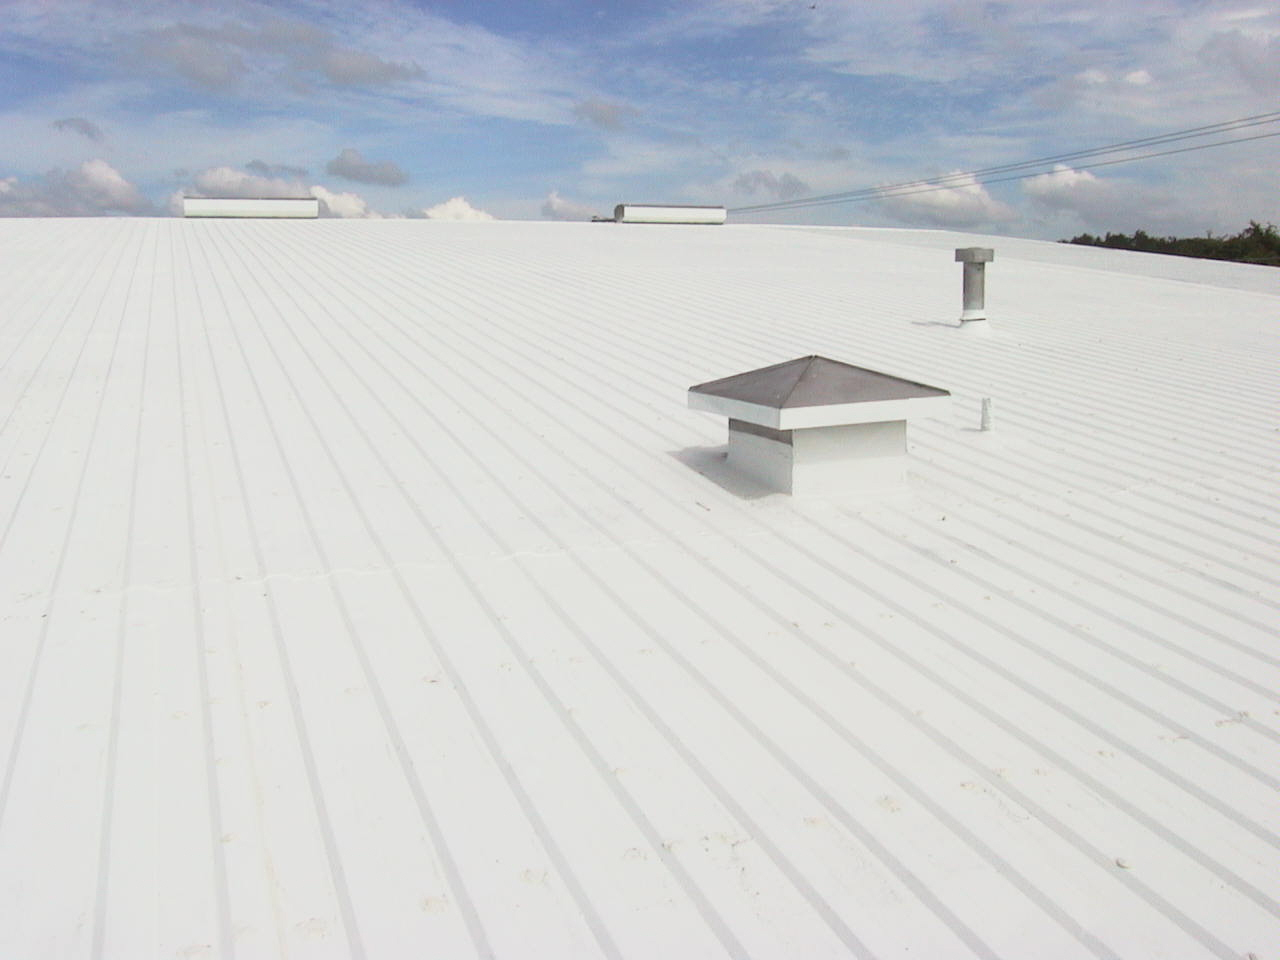 Good Low Lifecycle Cost, Low Maintenance, Leak Free, And Energy Efficient